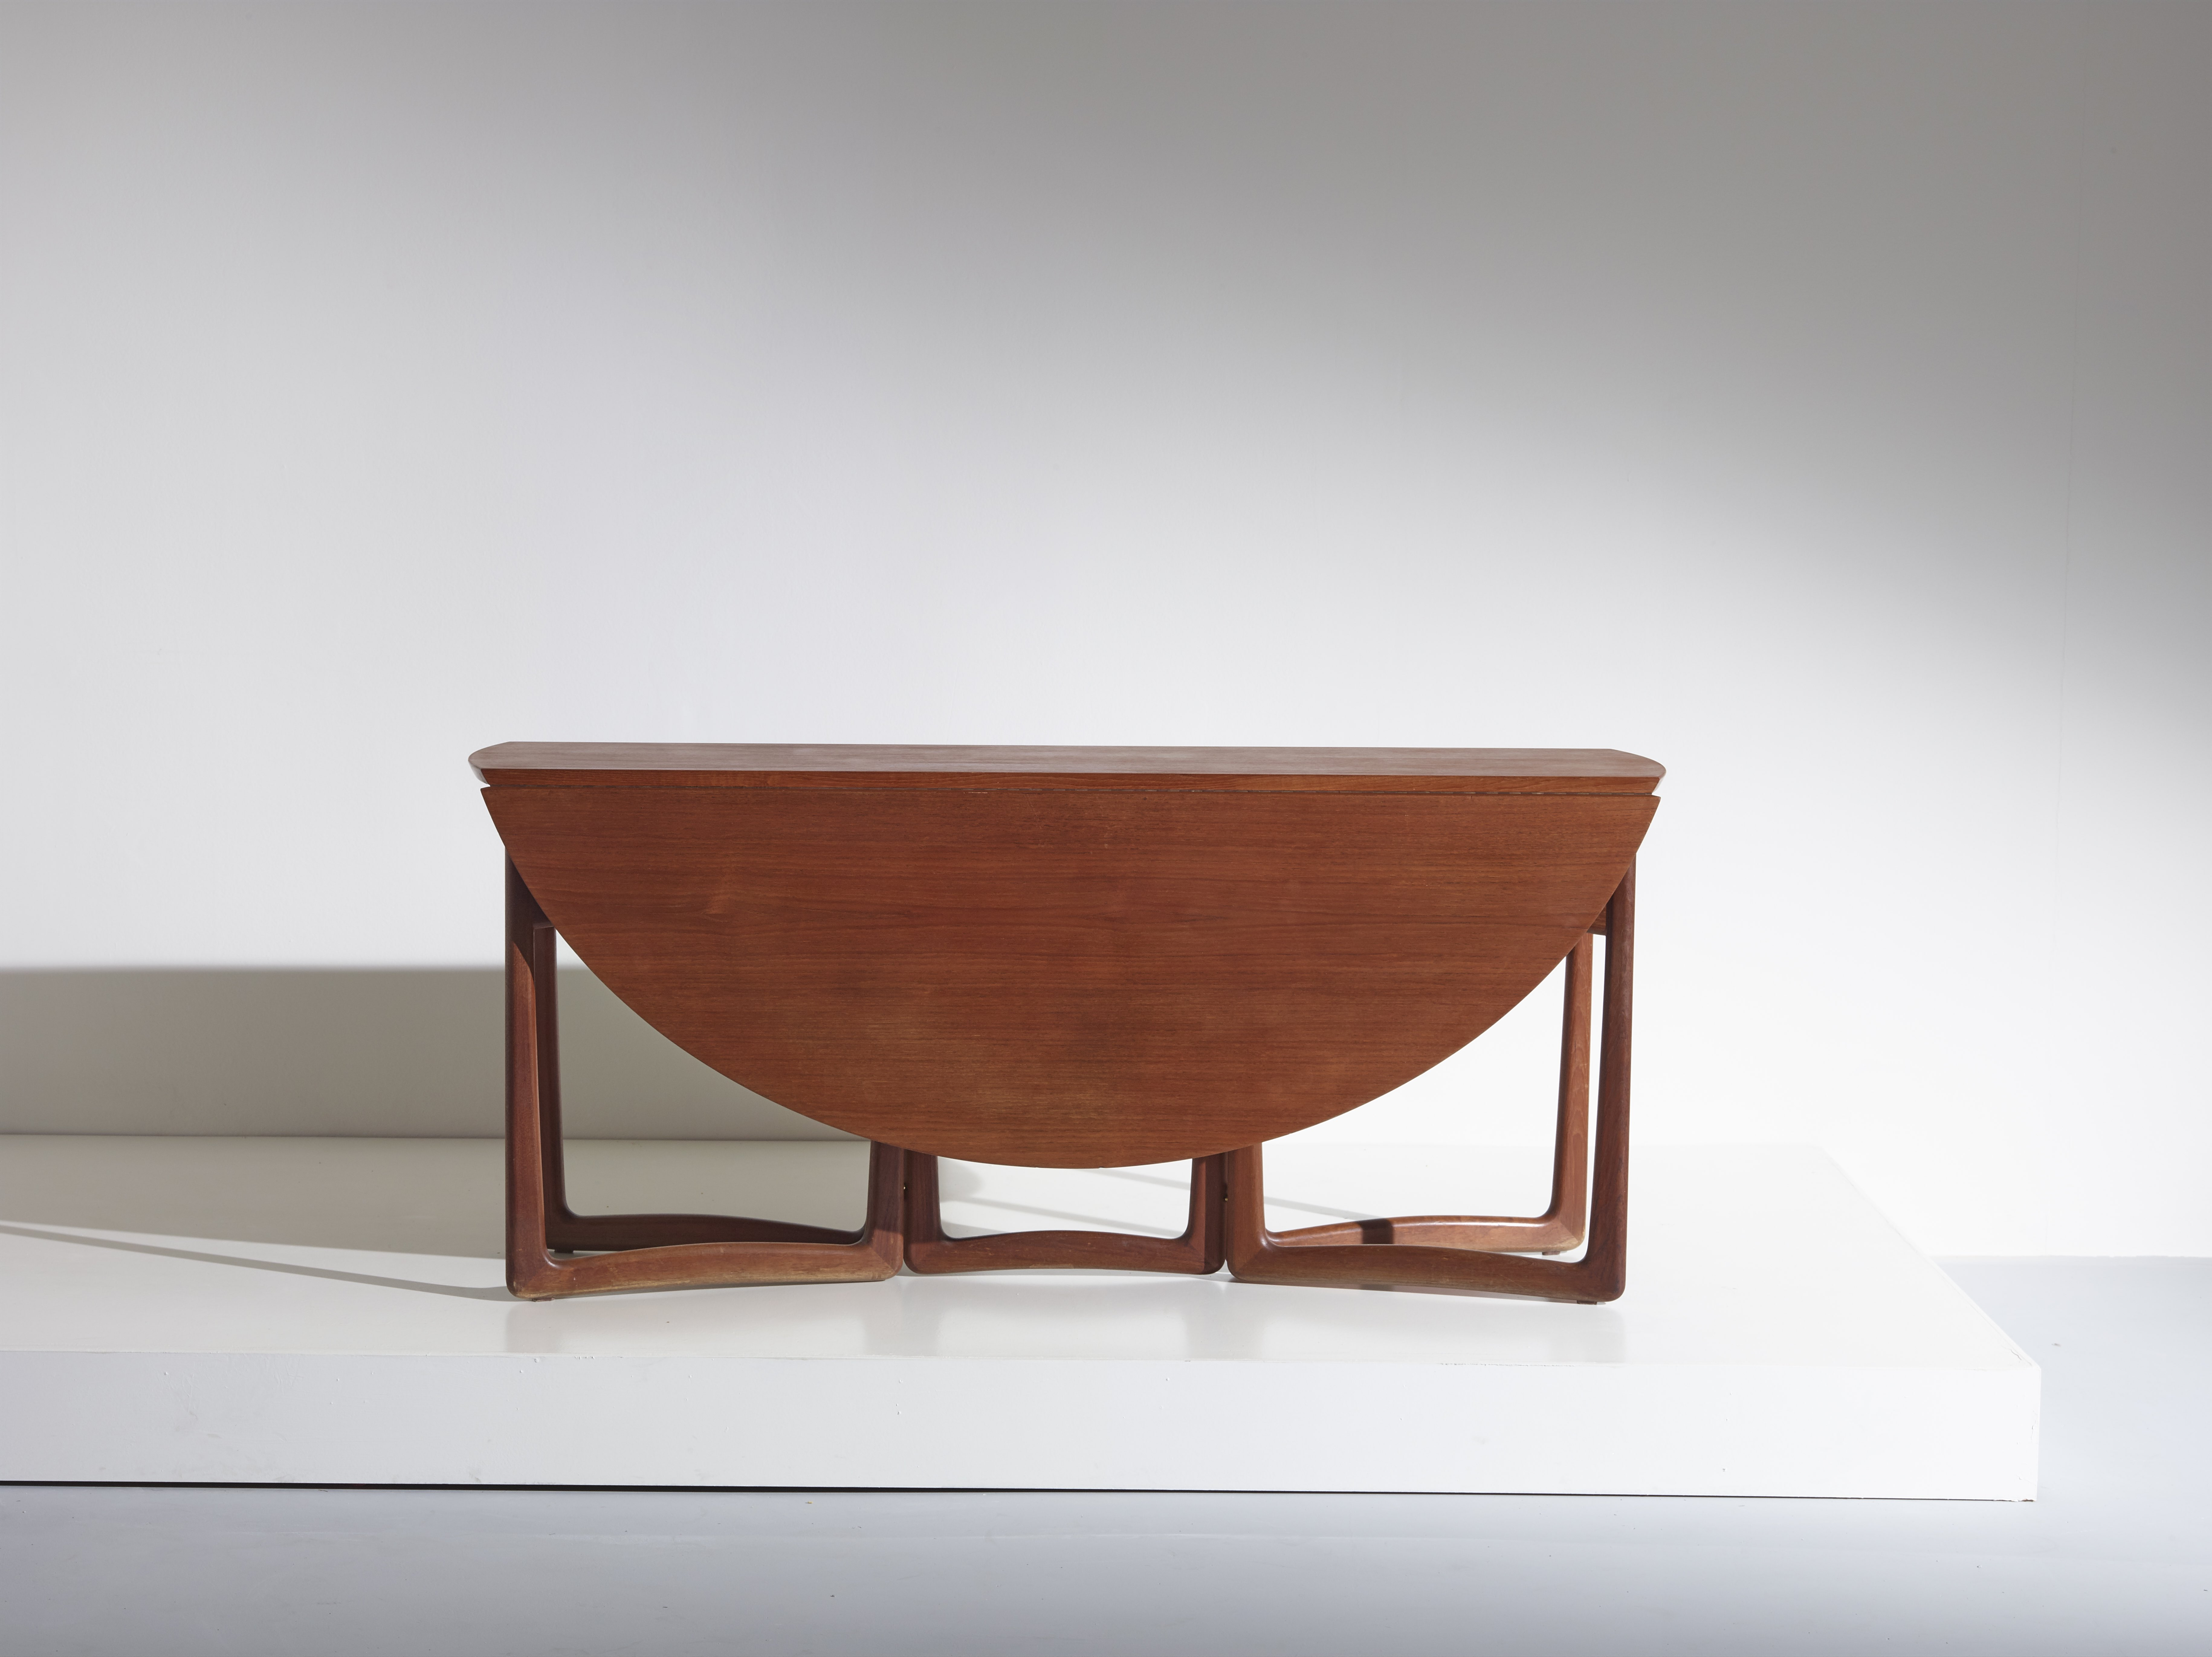 drop leaf dining table Model 20/59 by Peter Hvidt & Orla Molgaard Nielsen